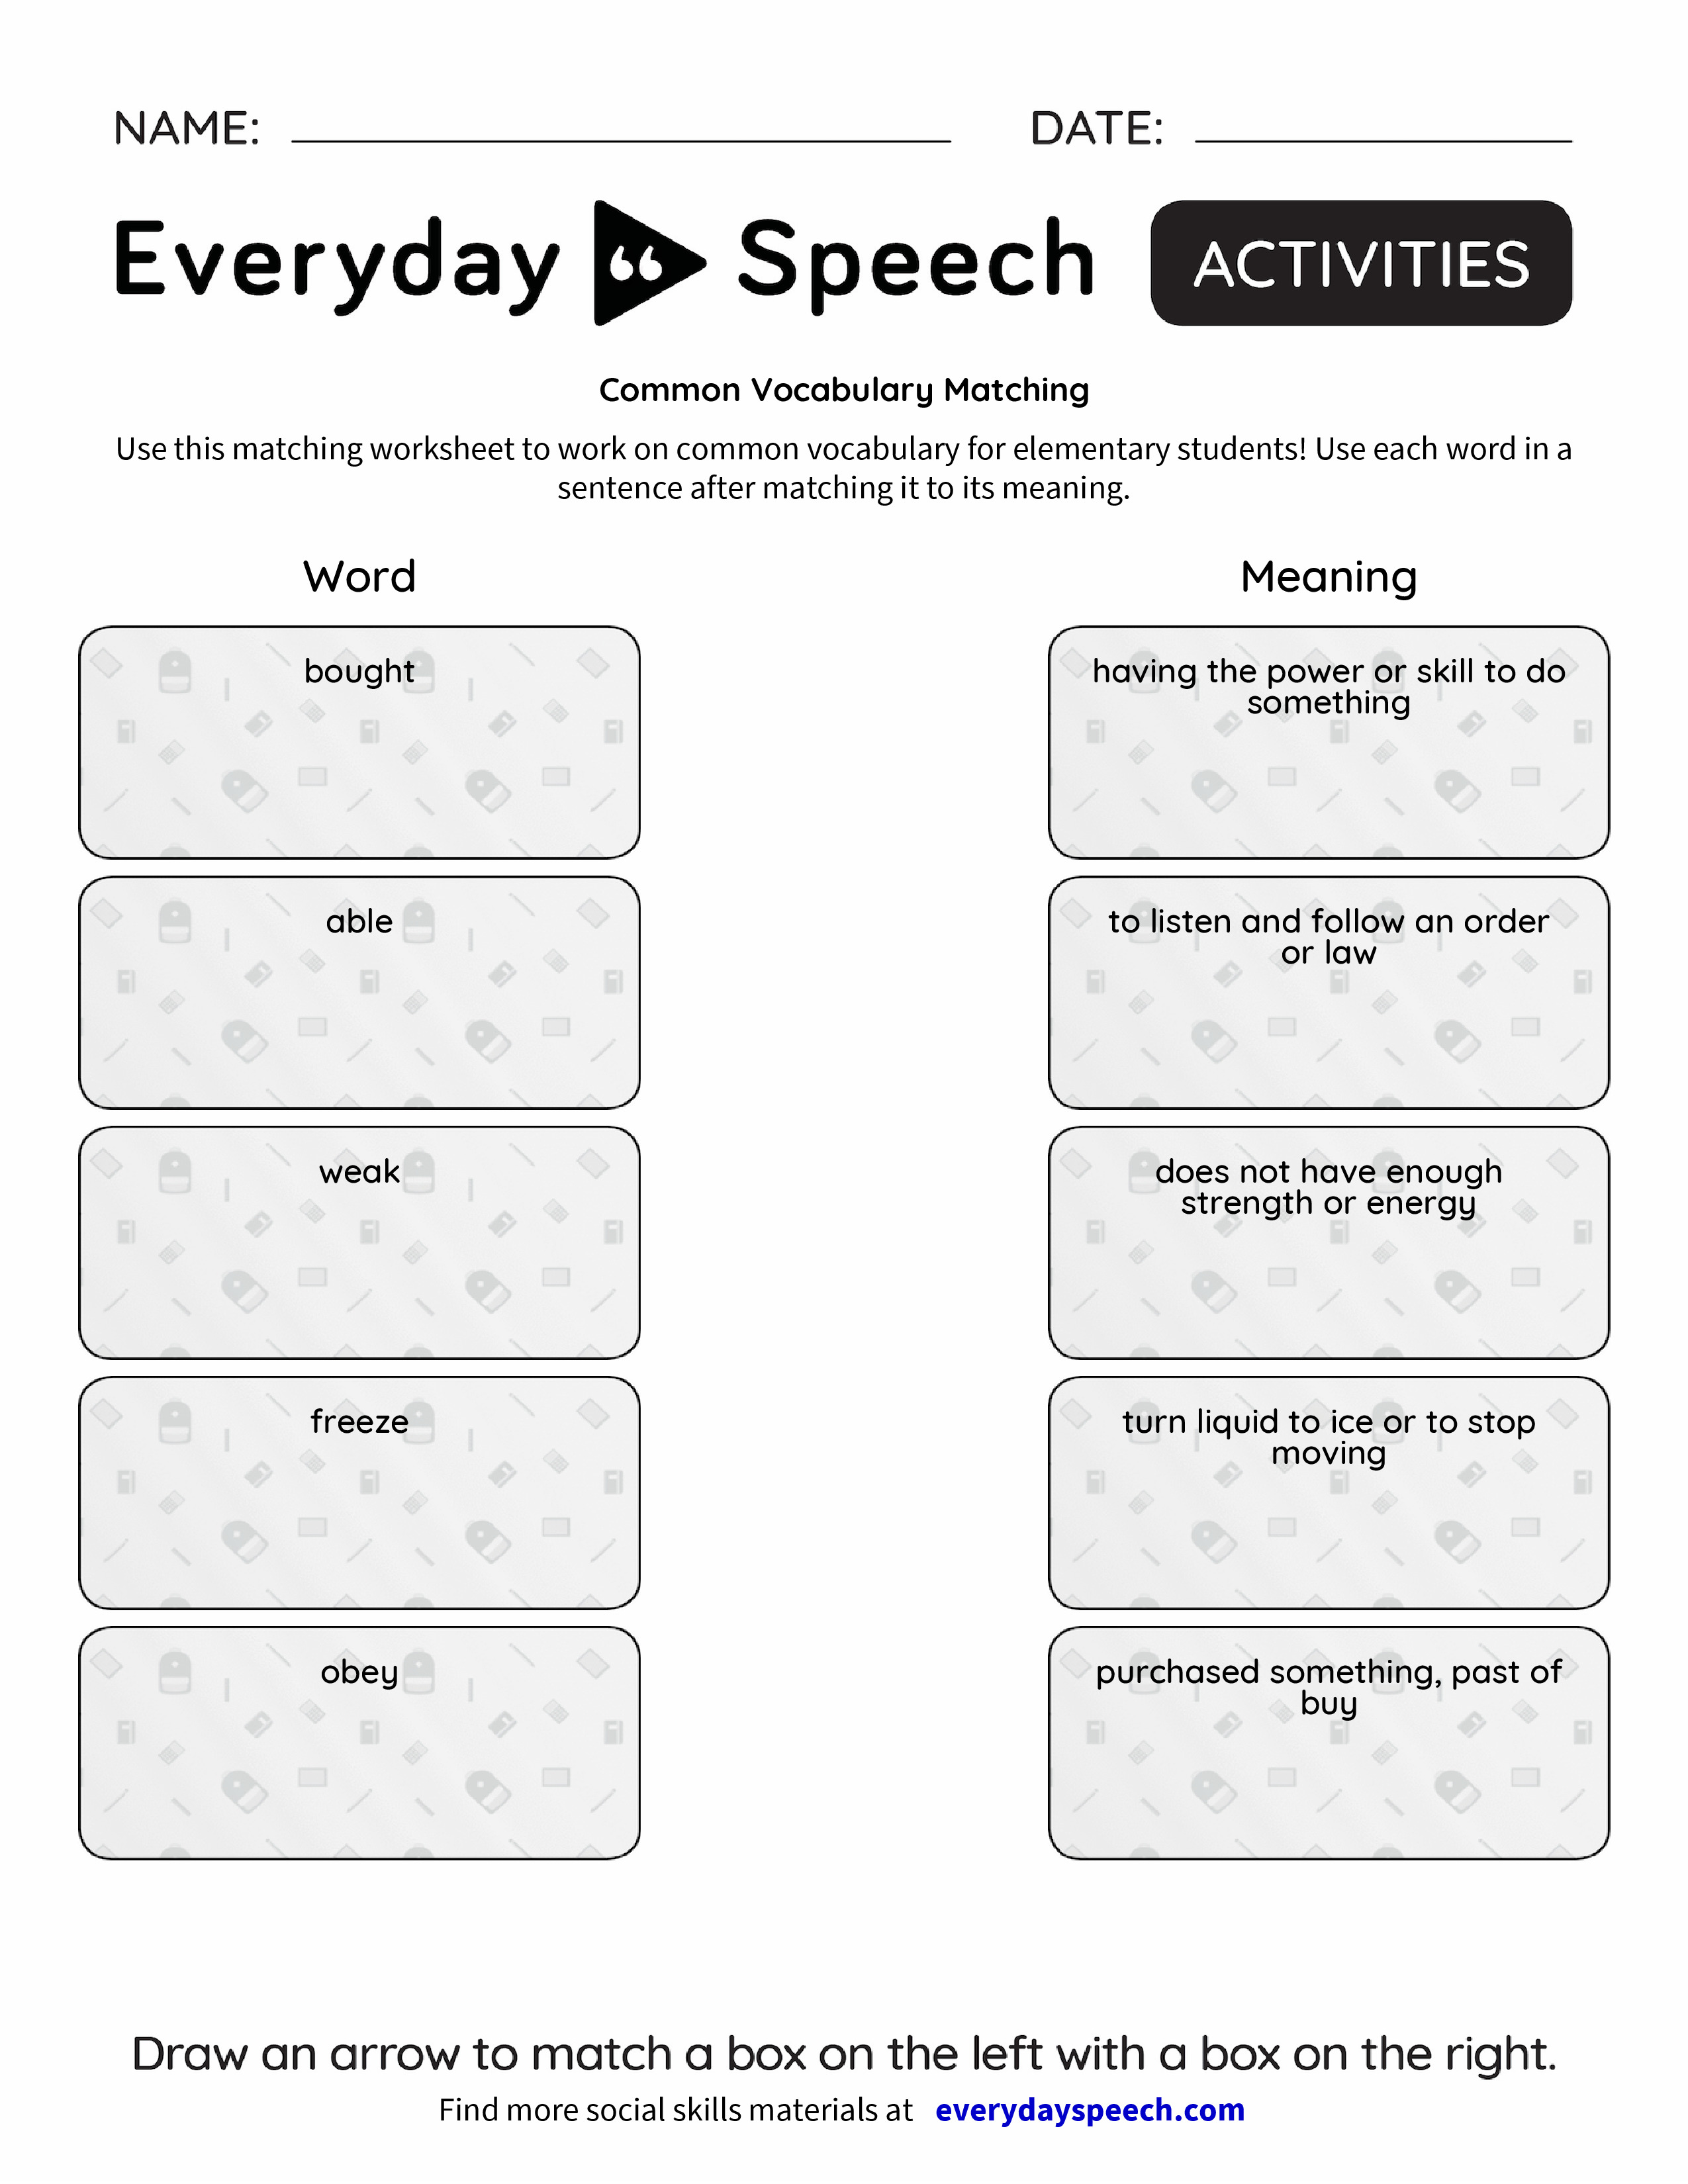 Common Vocabulary Matching - Everyday Speech - Everyday Speech